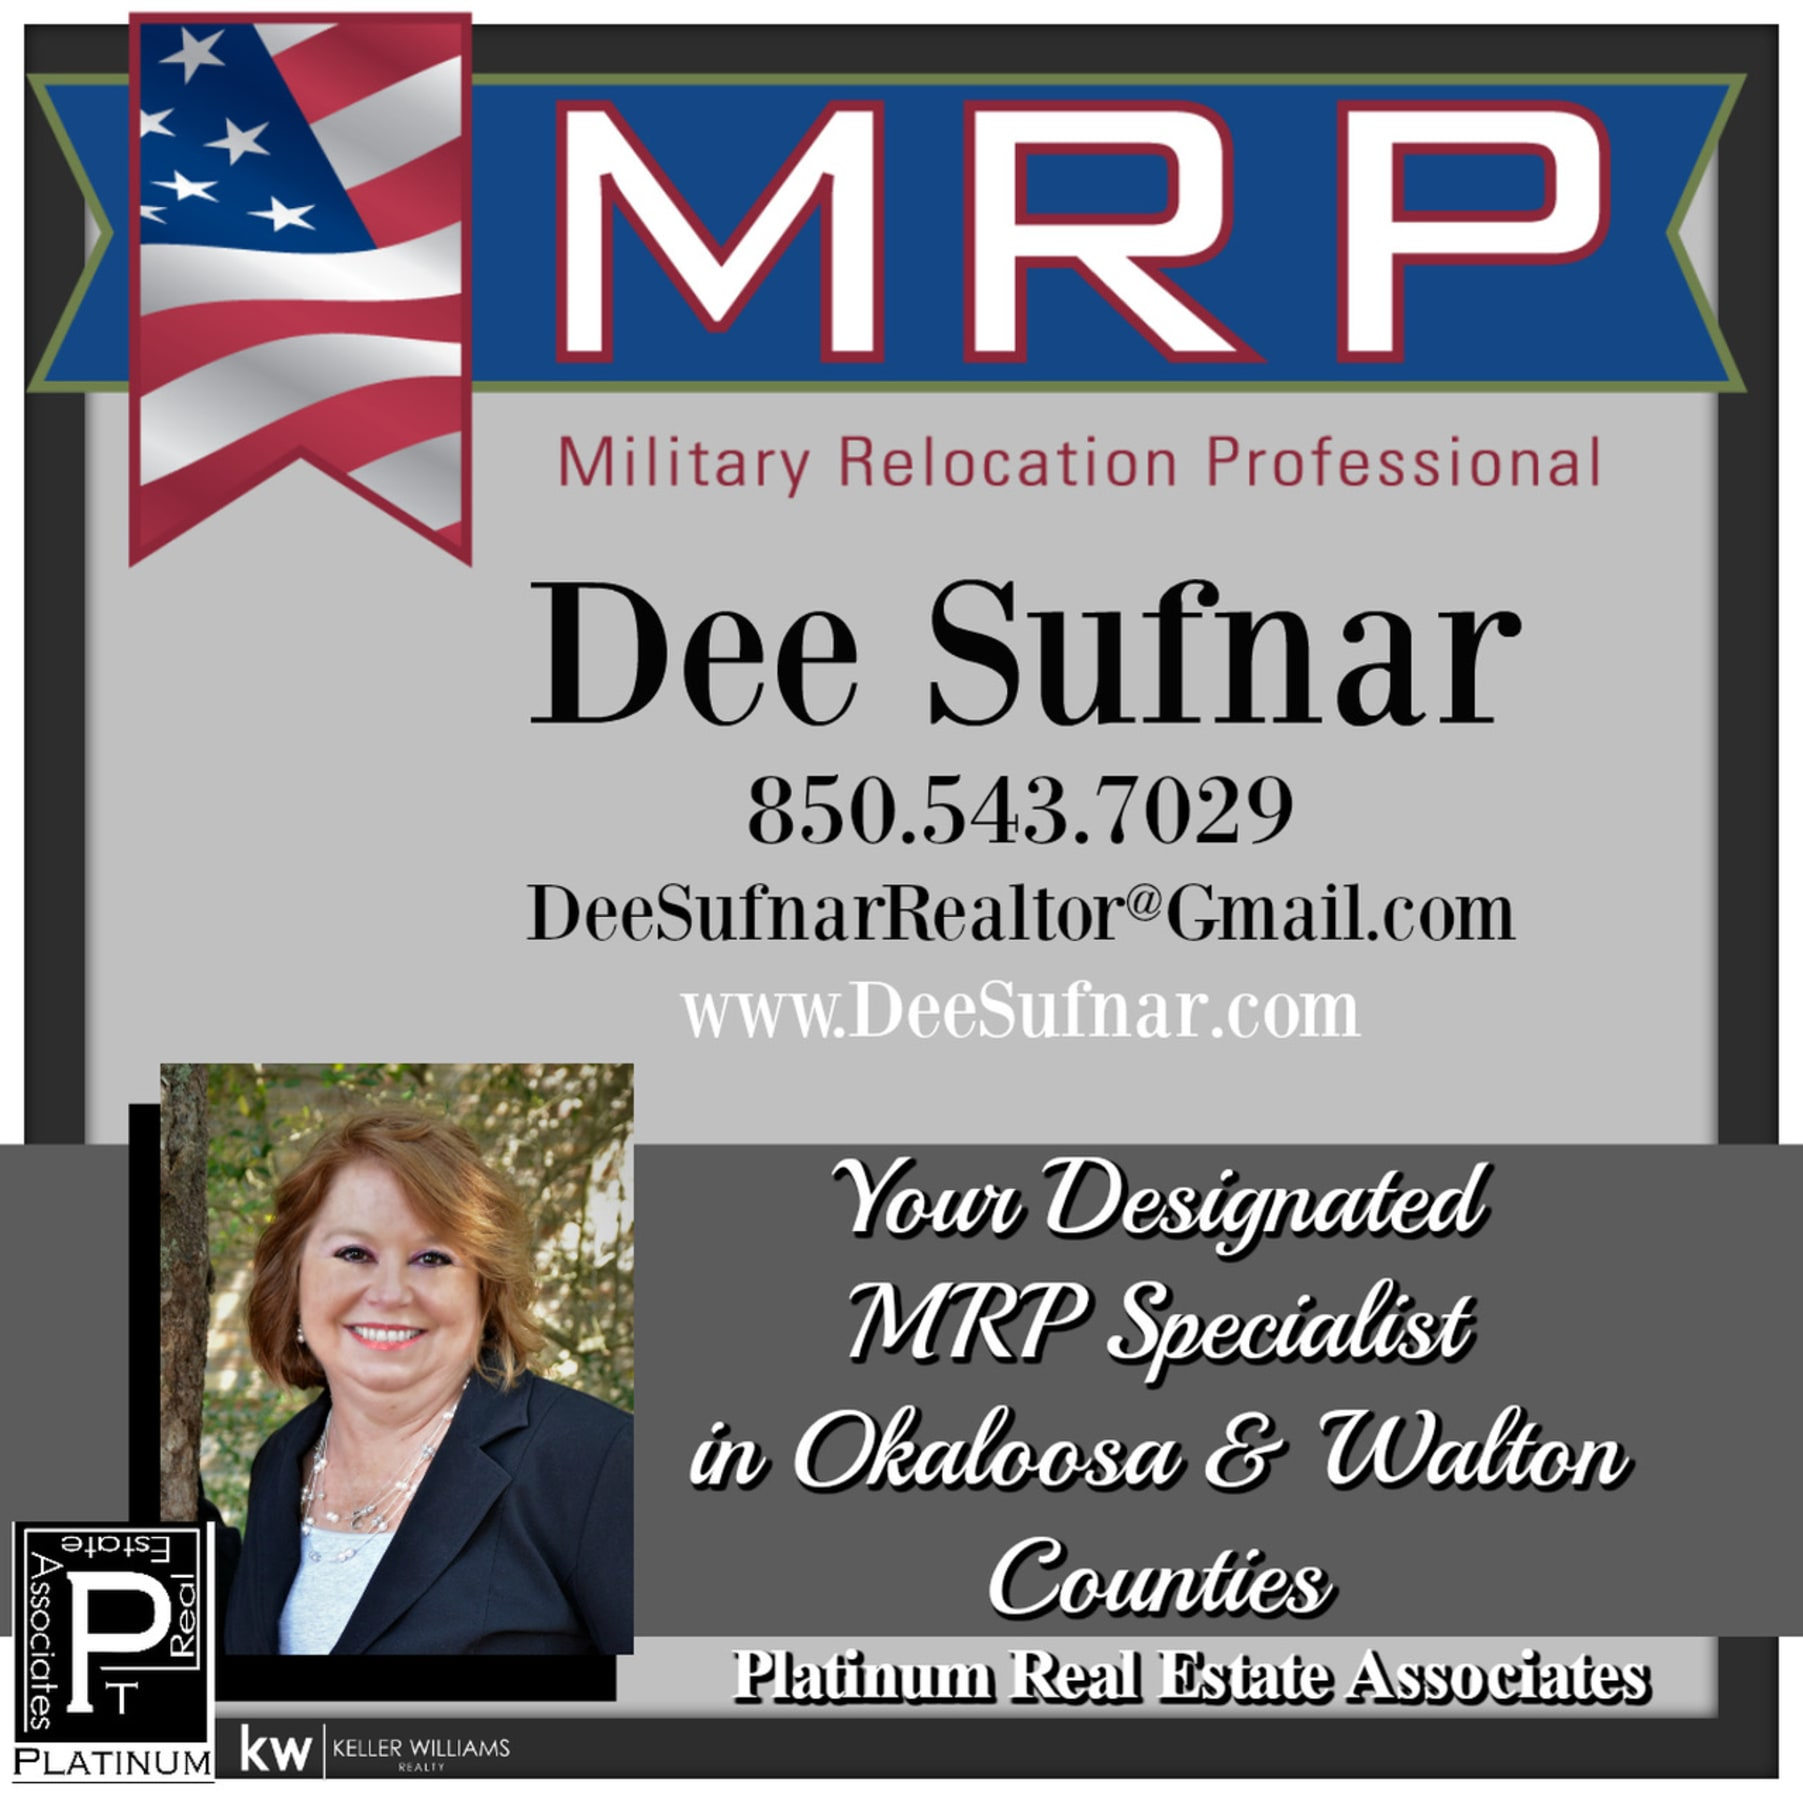 Deneen M Sufnar Earns Nars Military Relocation Professional